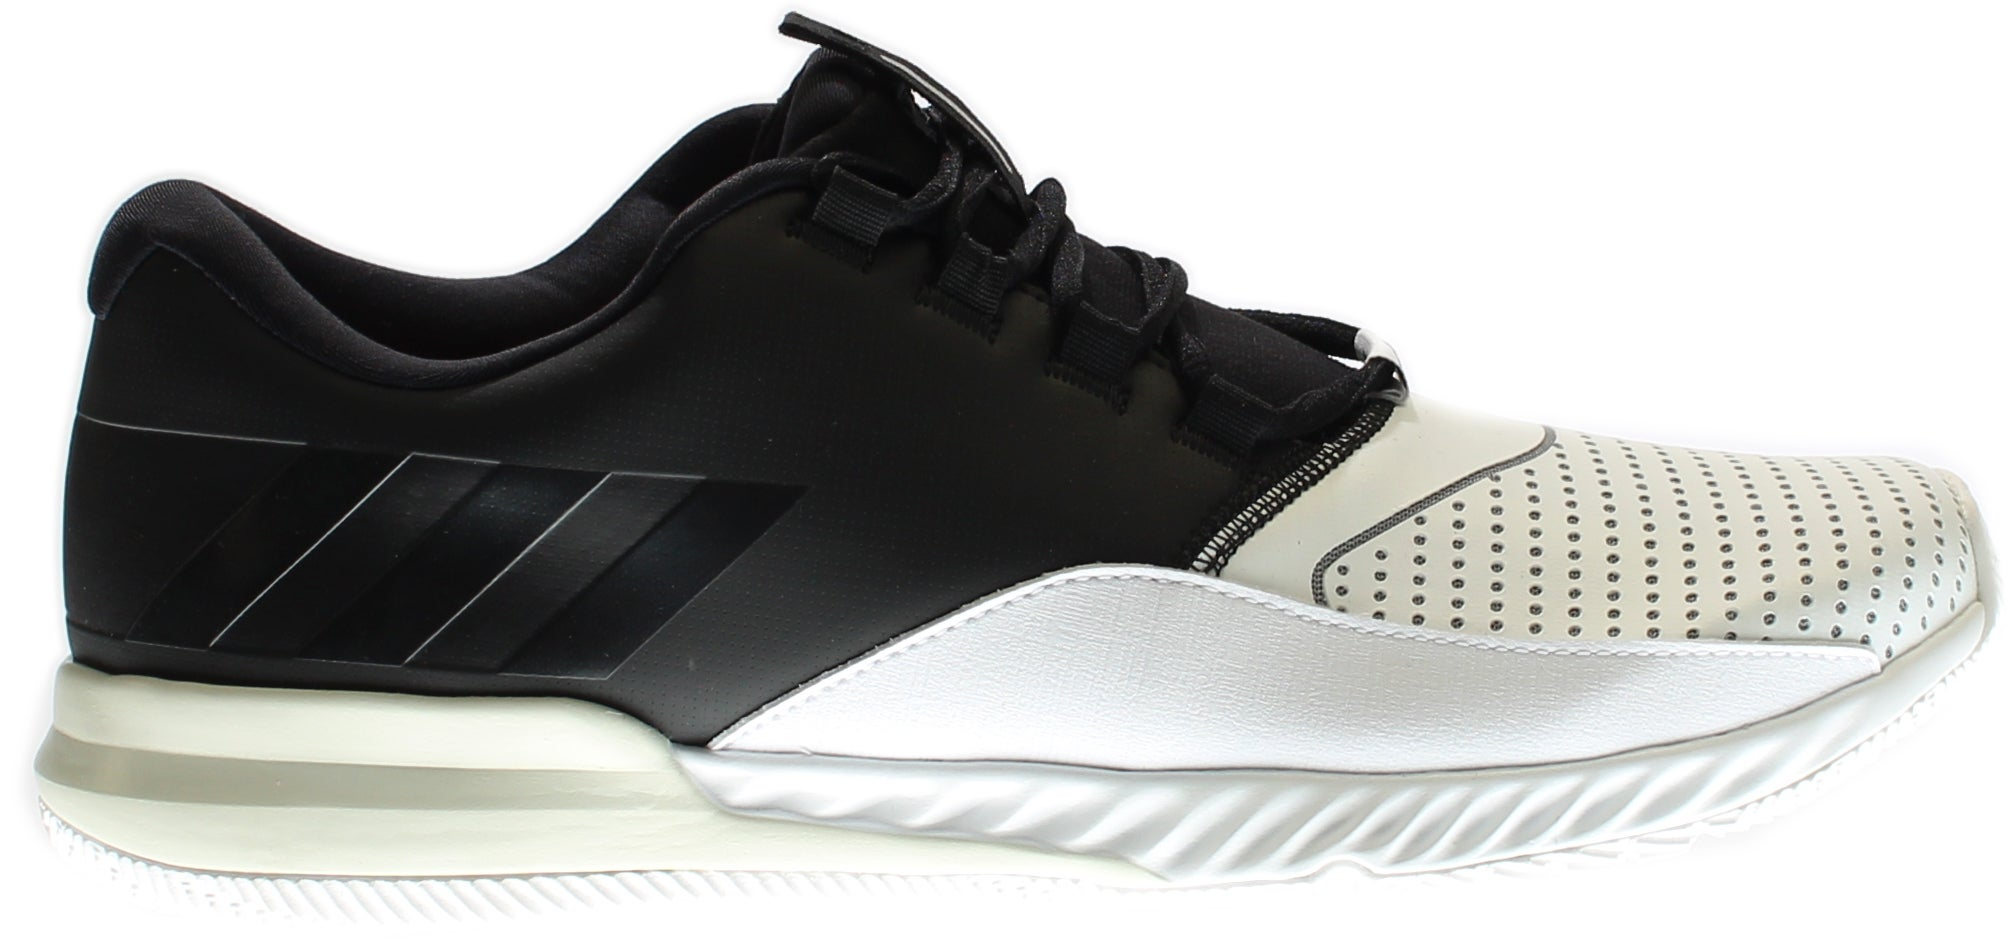 adidas Crazymove Bounce Black;White - Mens  - Size 9.5